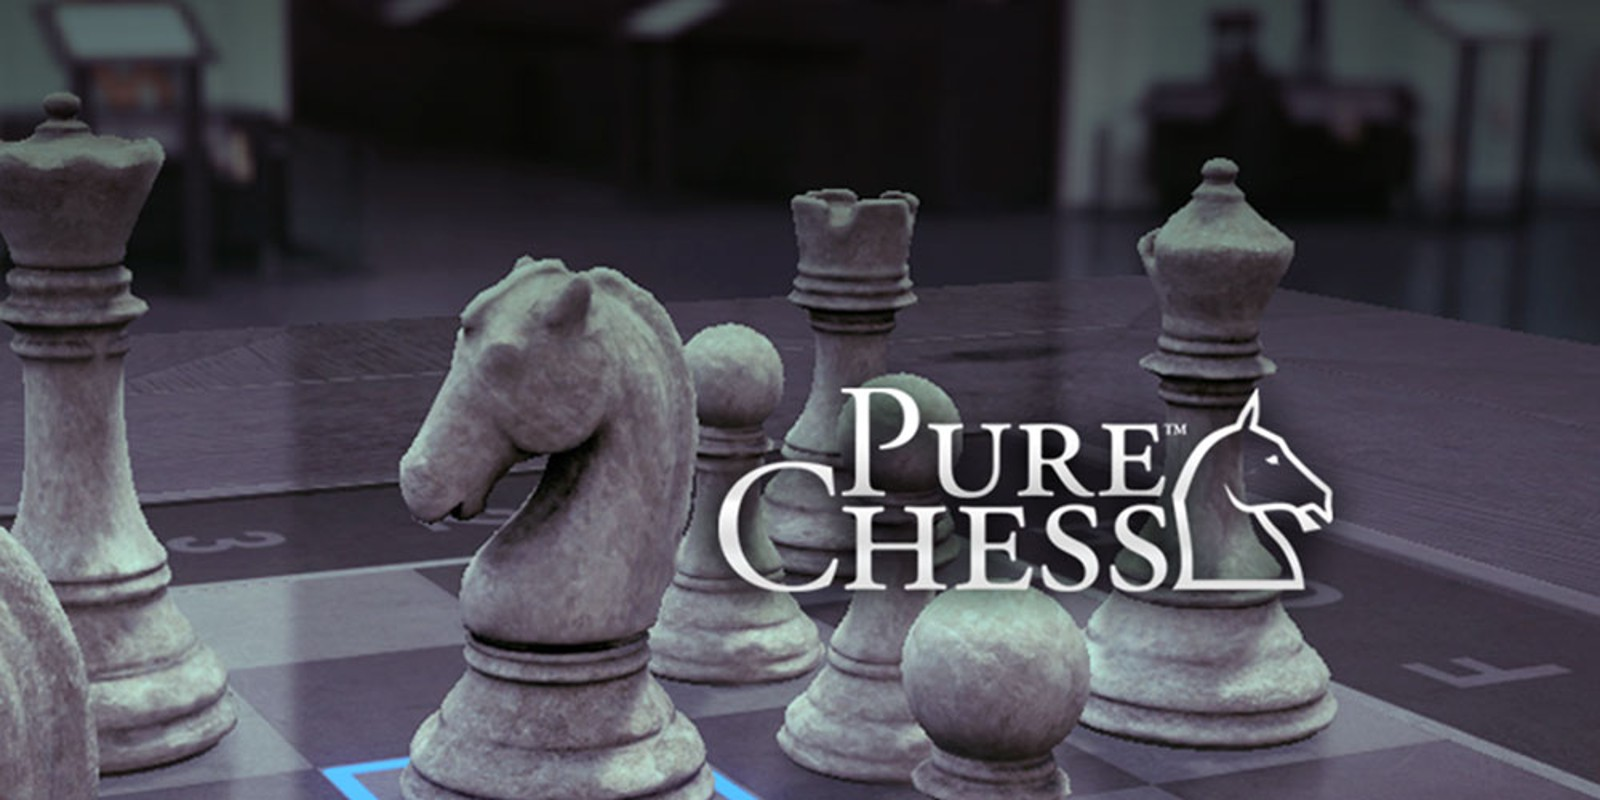 Pure Chess®